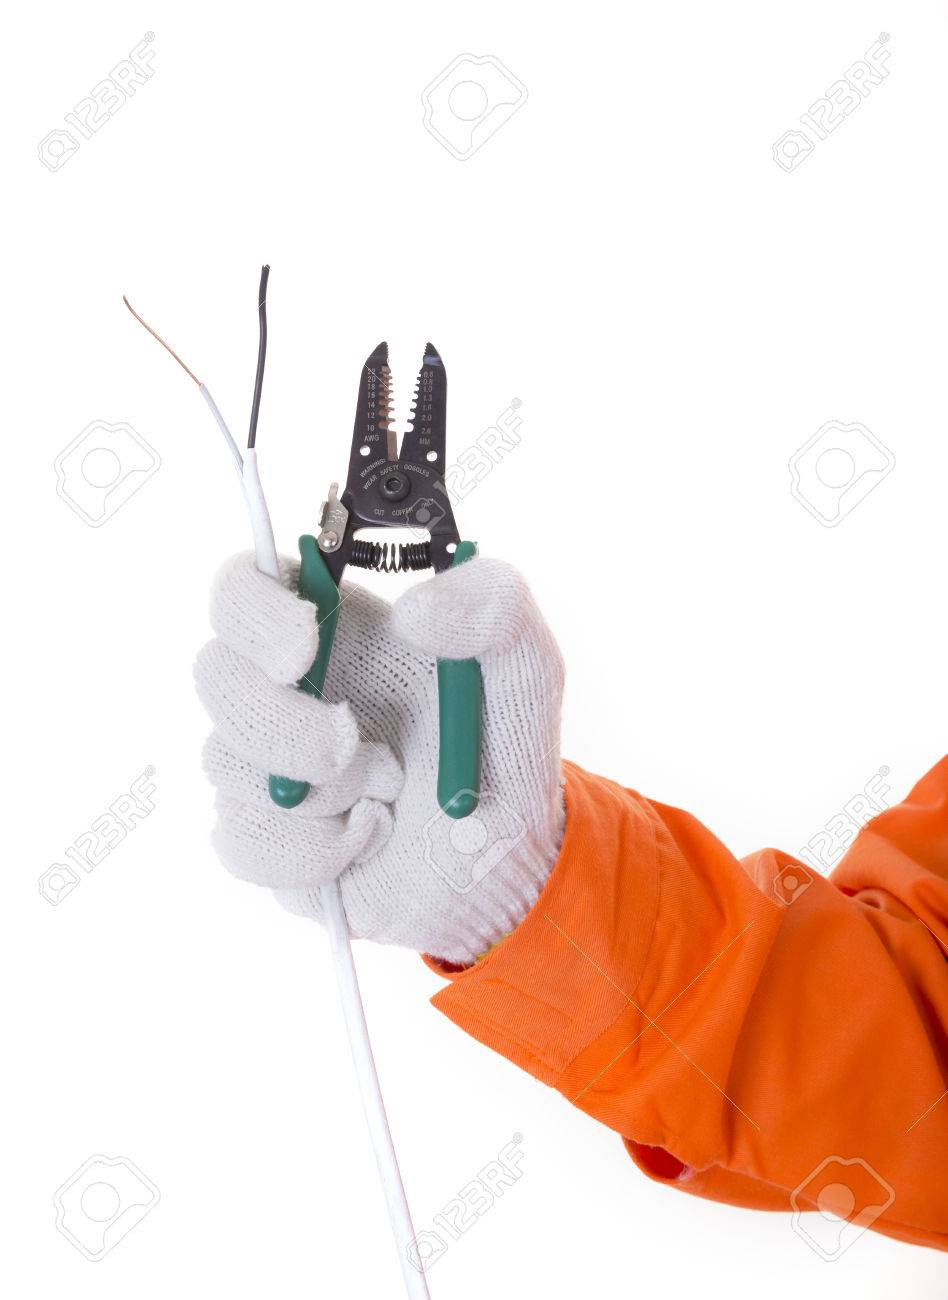 Man Hand Hold Cutter Ready To Cut Electrical Wire Or Cable. Isolated ...